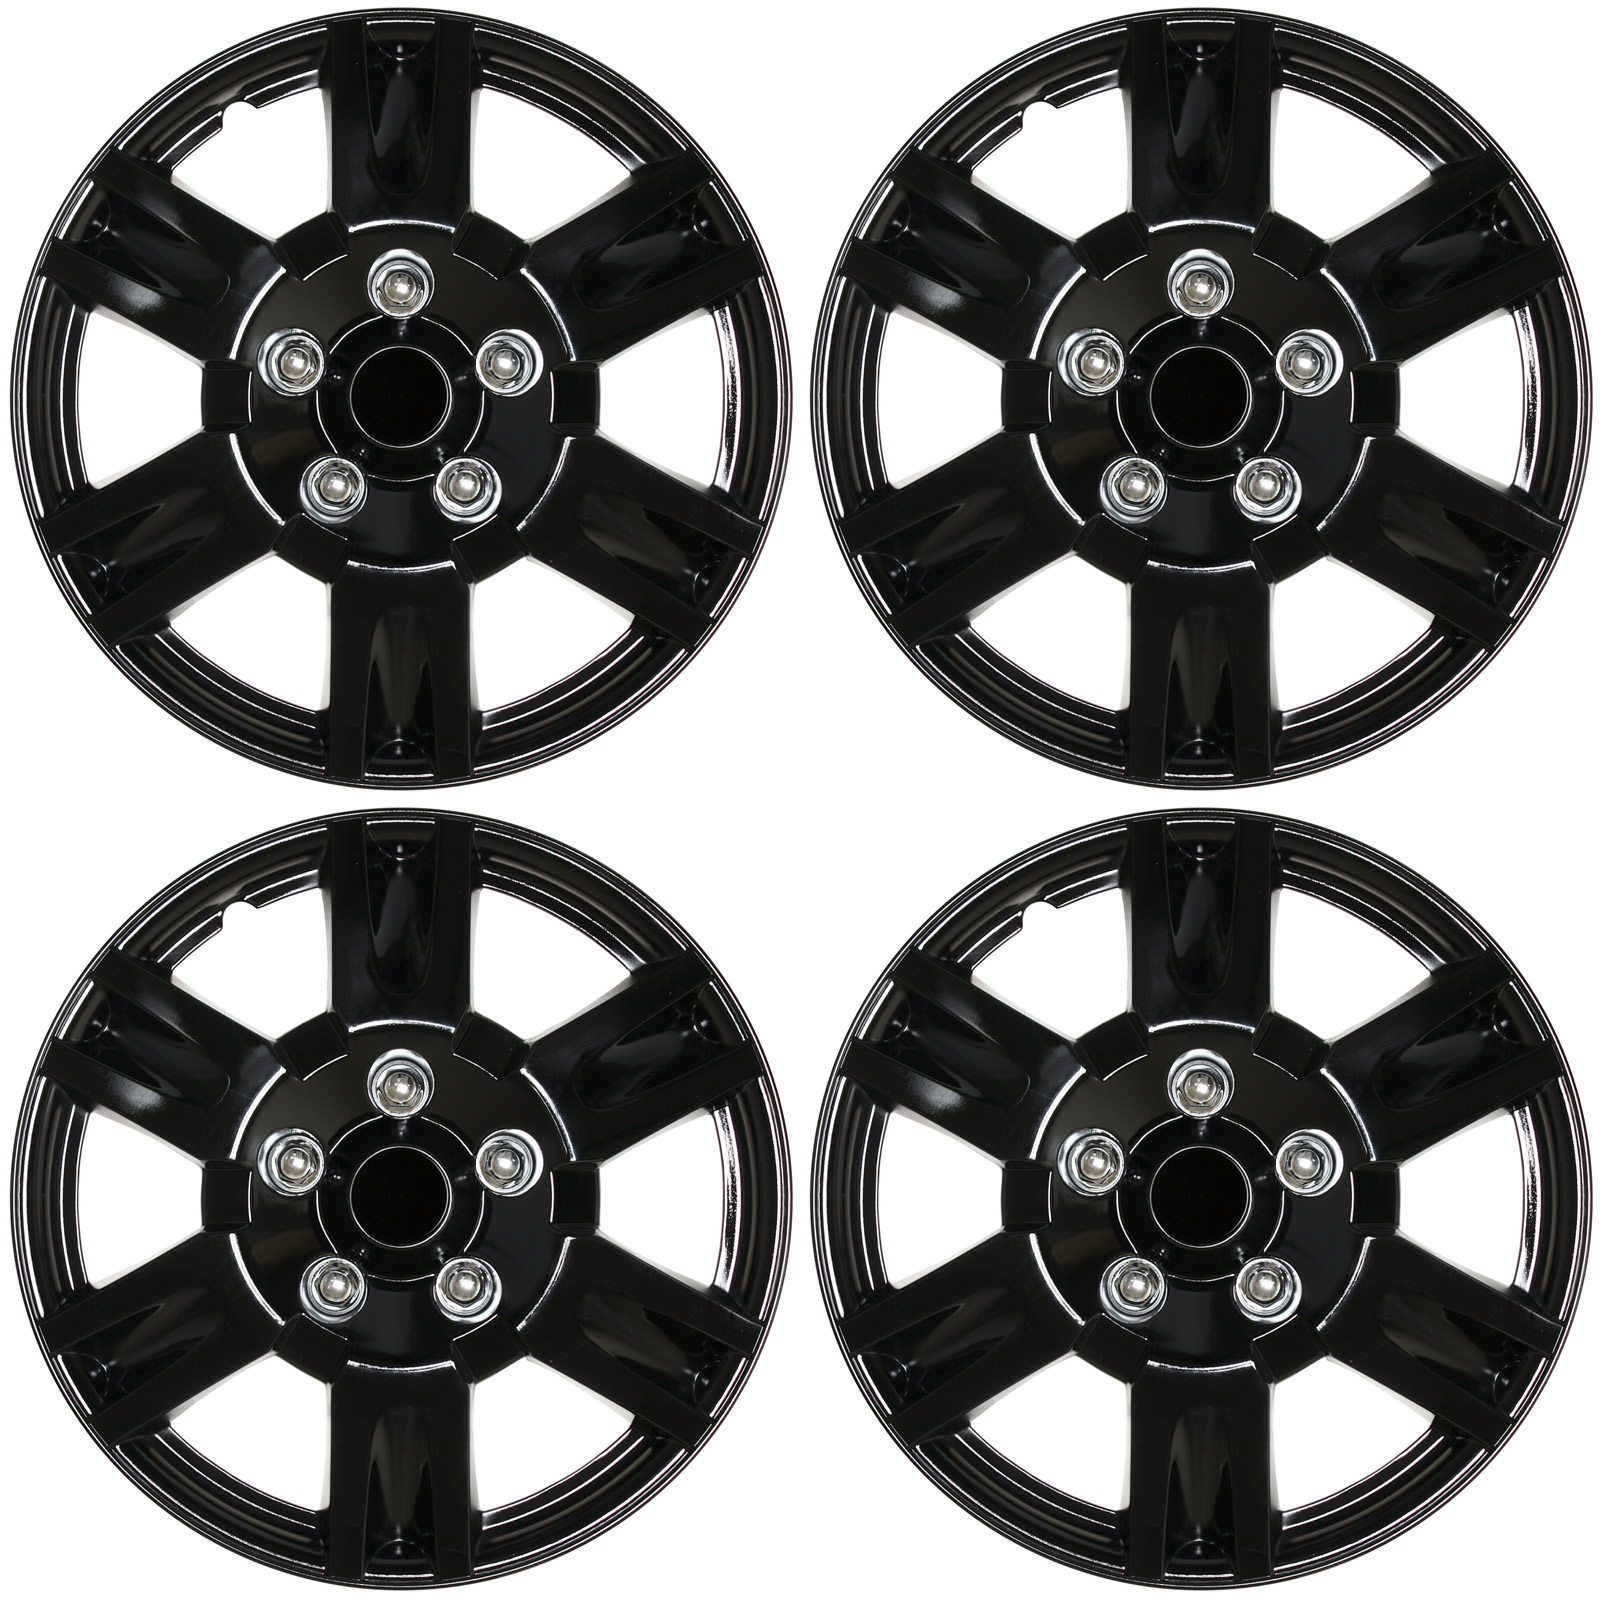 """Cover Trend (Set of 4) Ice Shiny Black Aftermarket 15"""" Inch Hubcaps for Nissan Altima Replica Wheel Covers"""